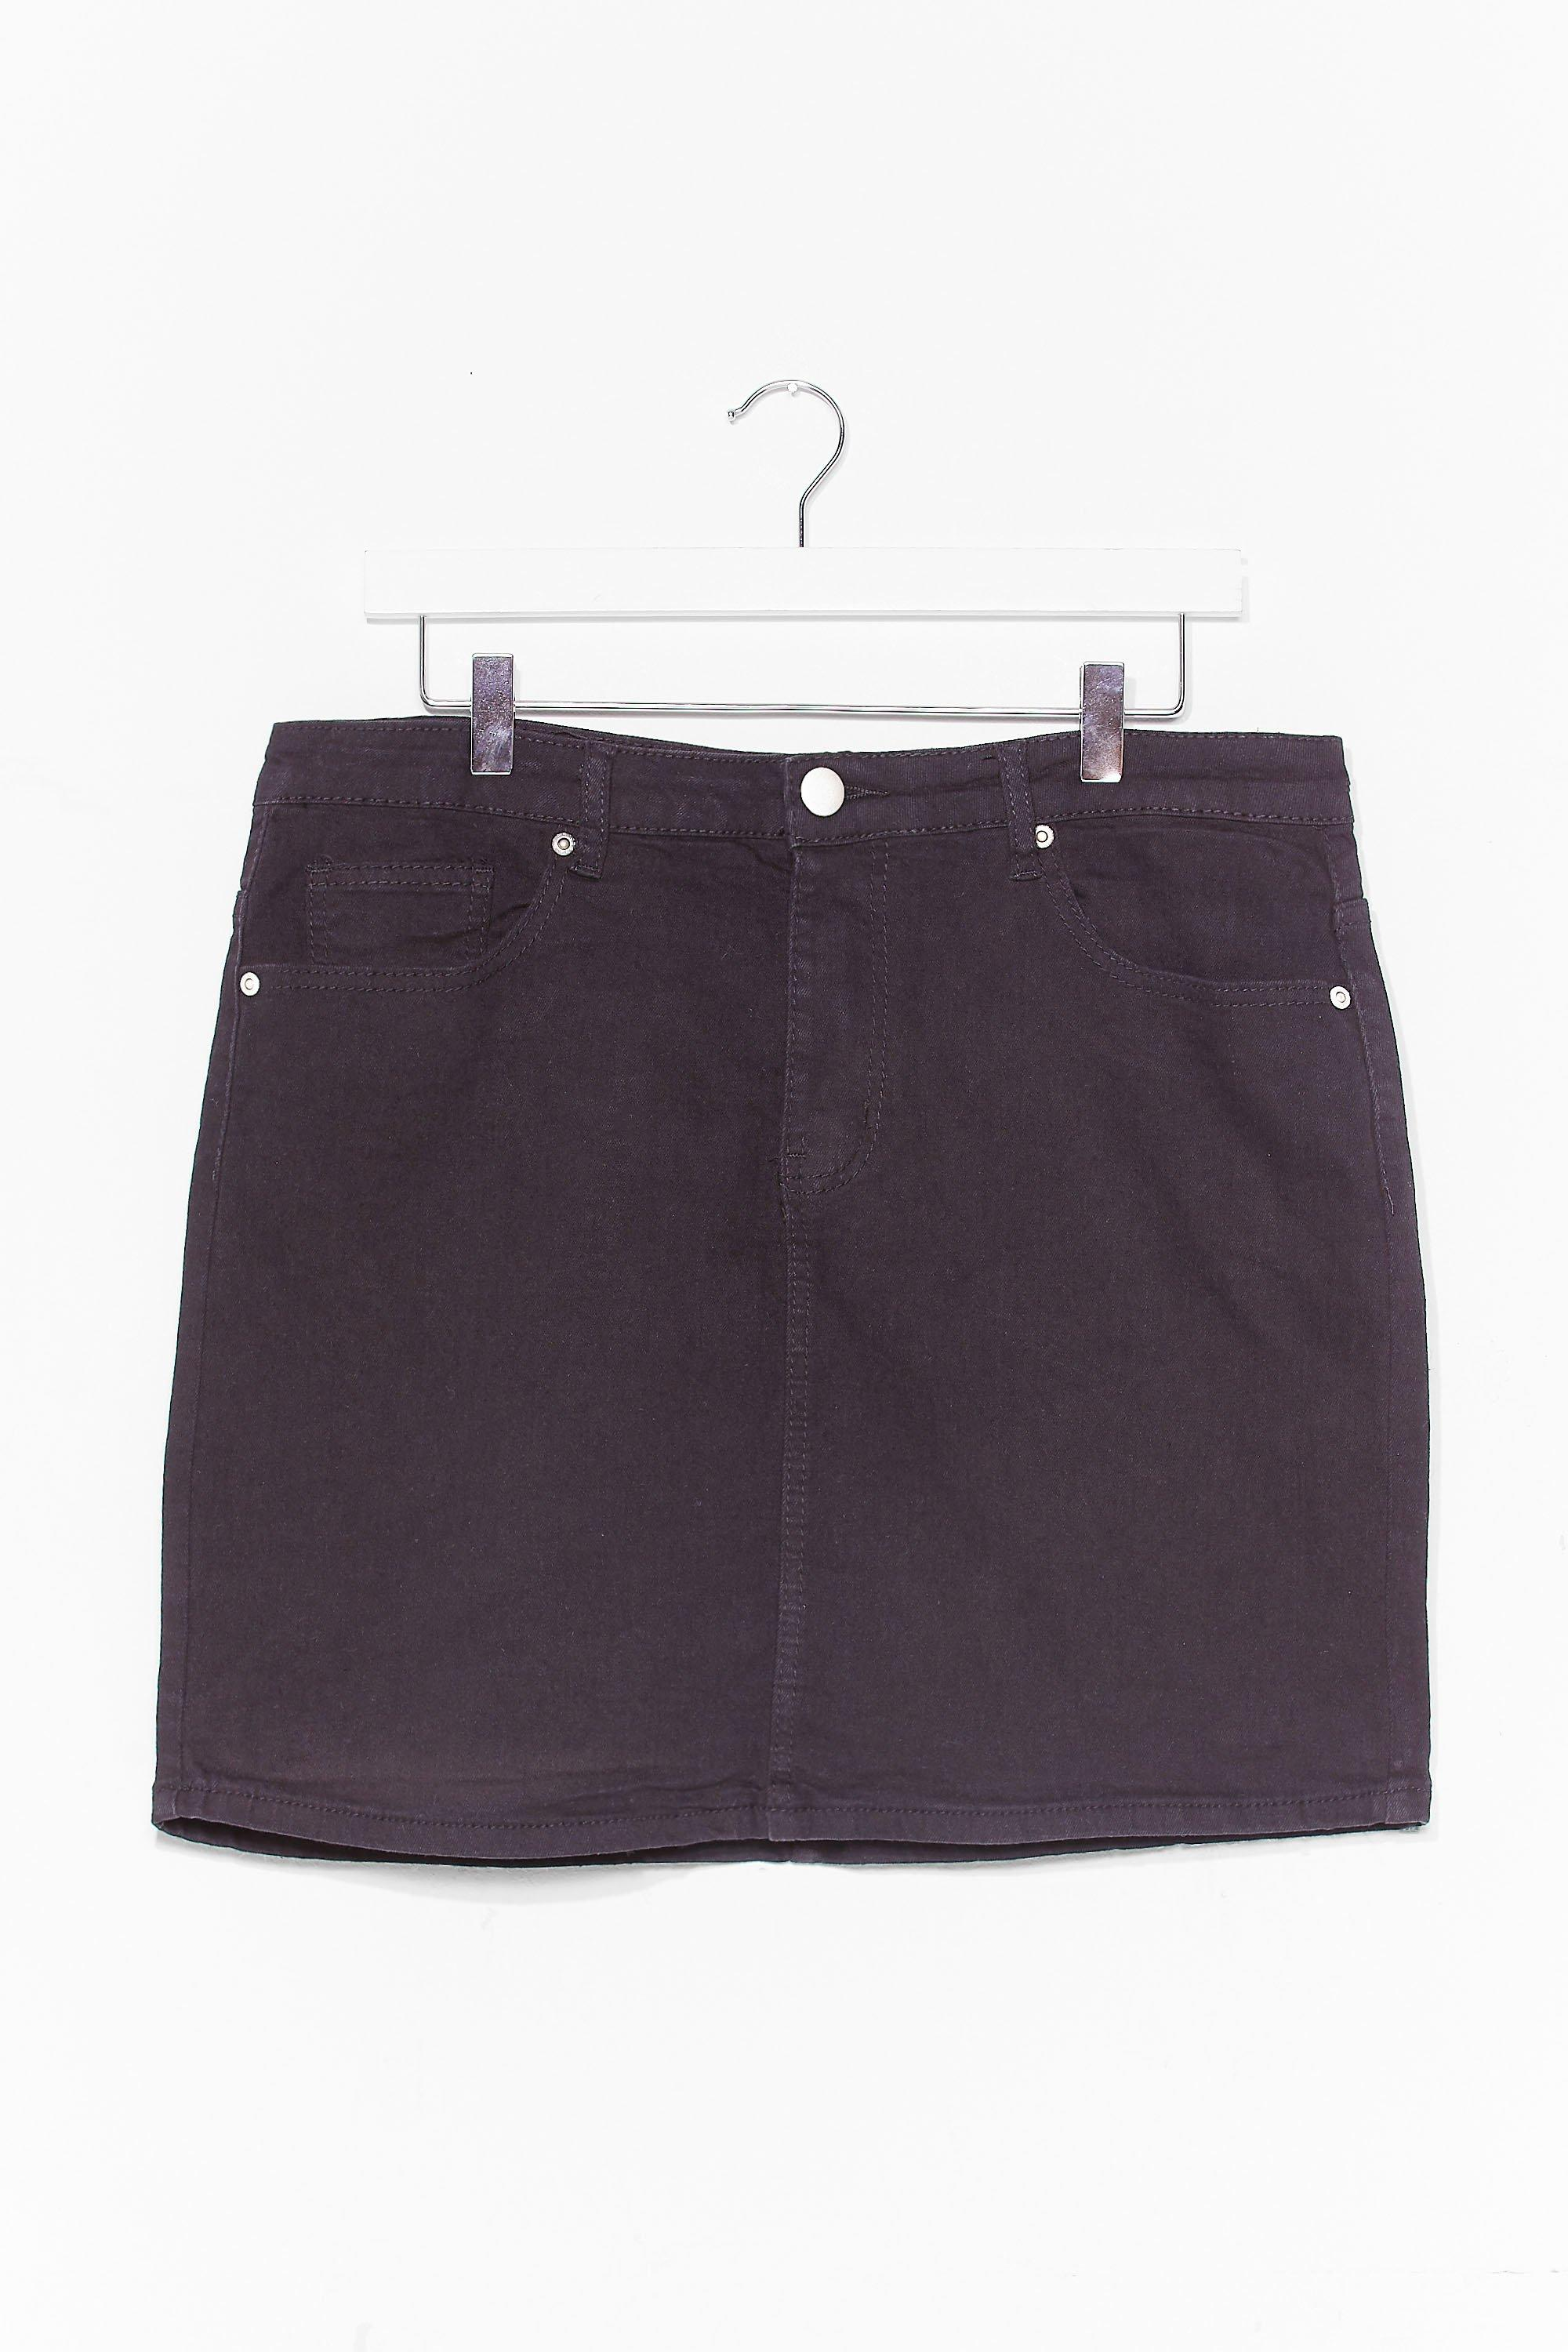 Be There in a Mini Plus Denim Skirt 8